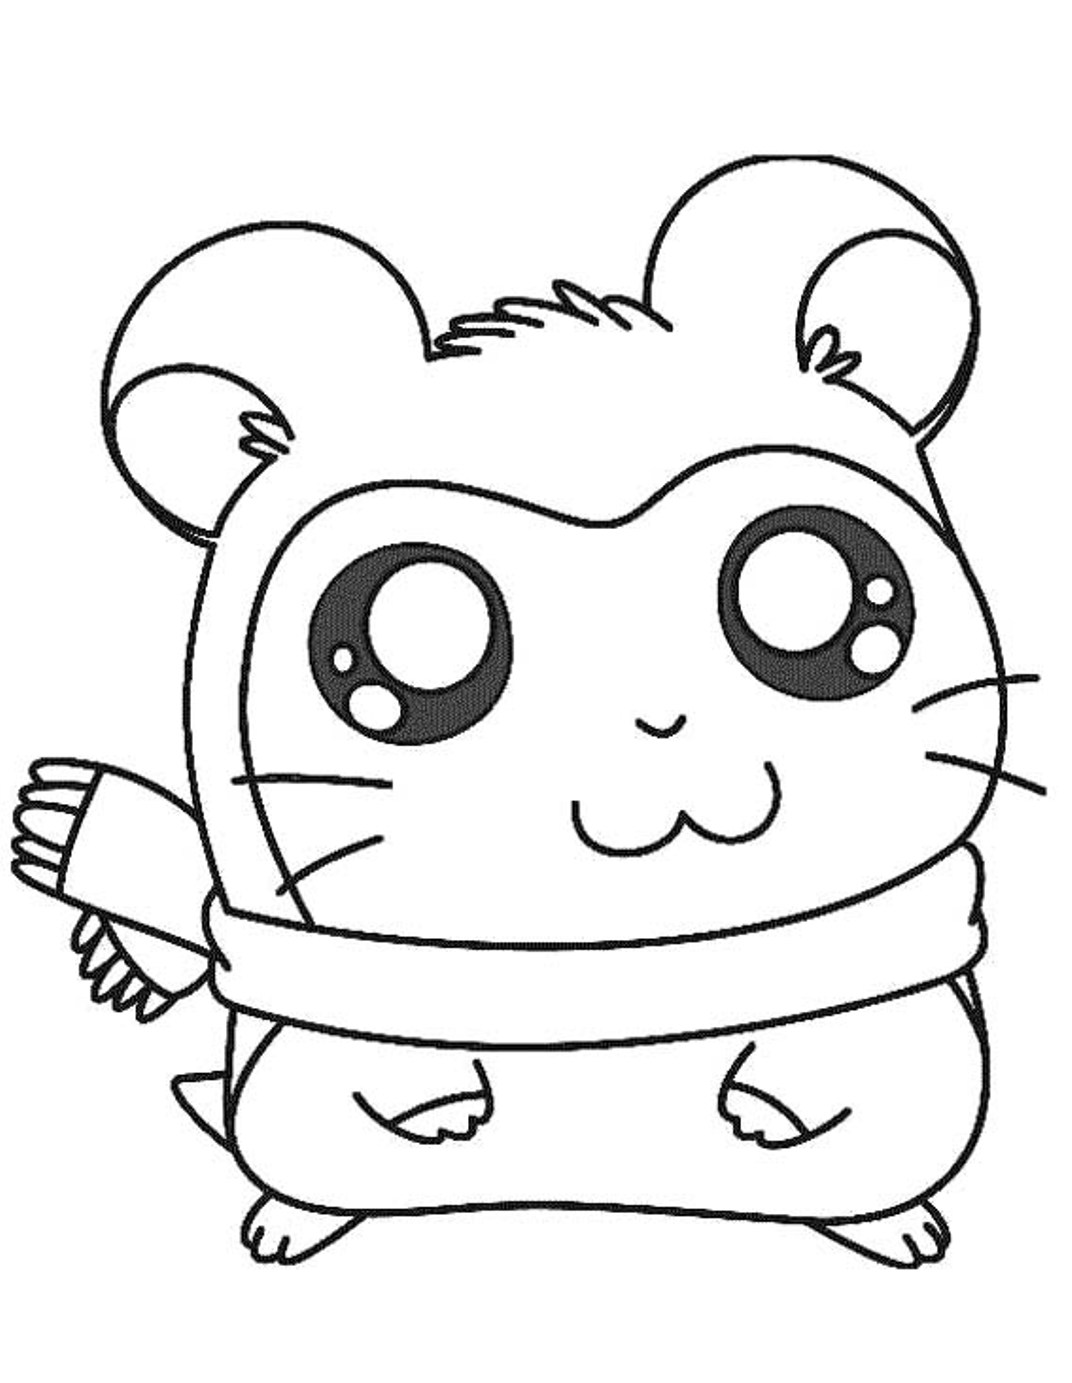 guinea pig free coloring pages | Guinea pig coloring pages to download and print for free